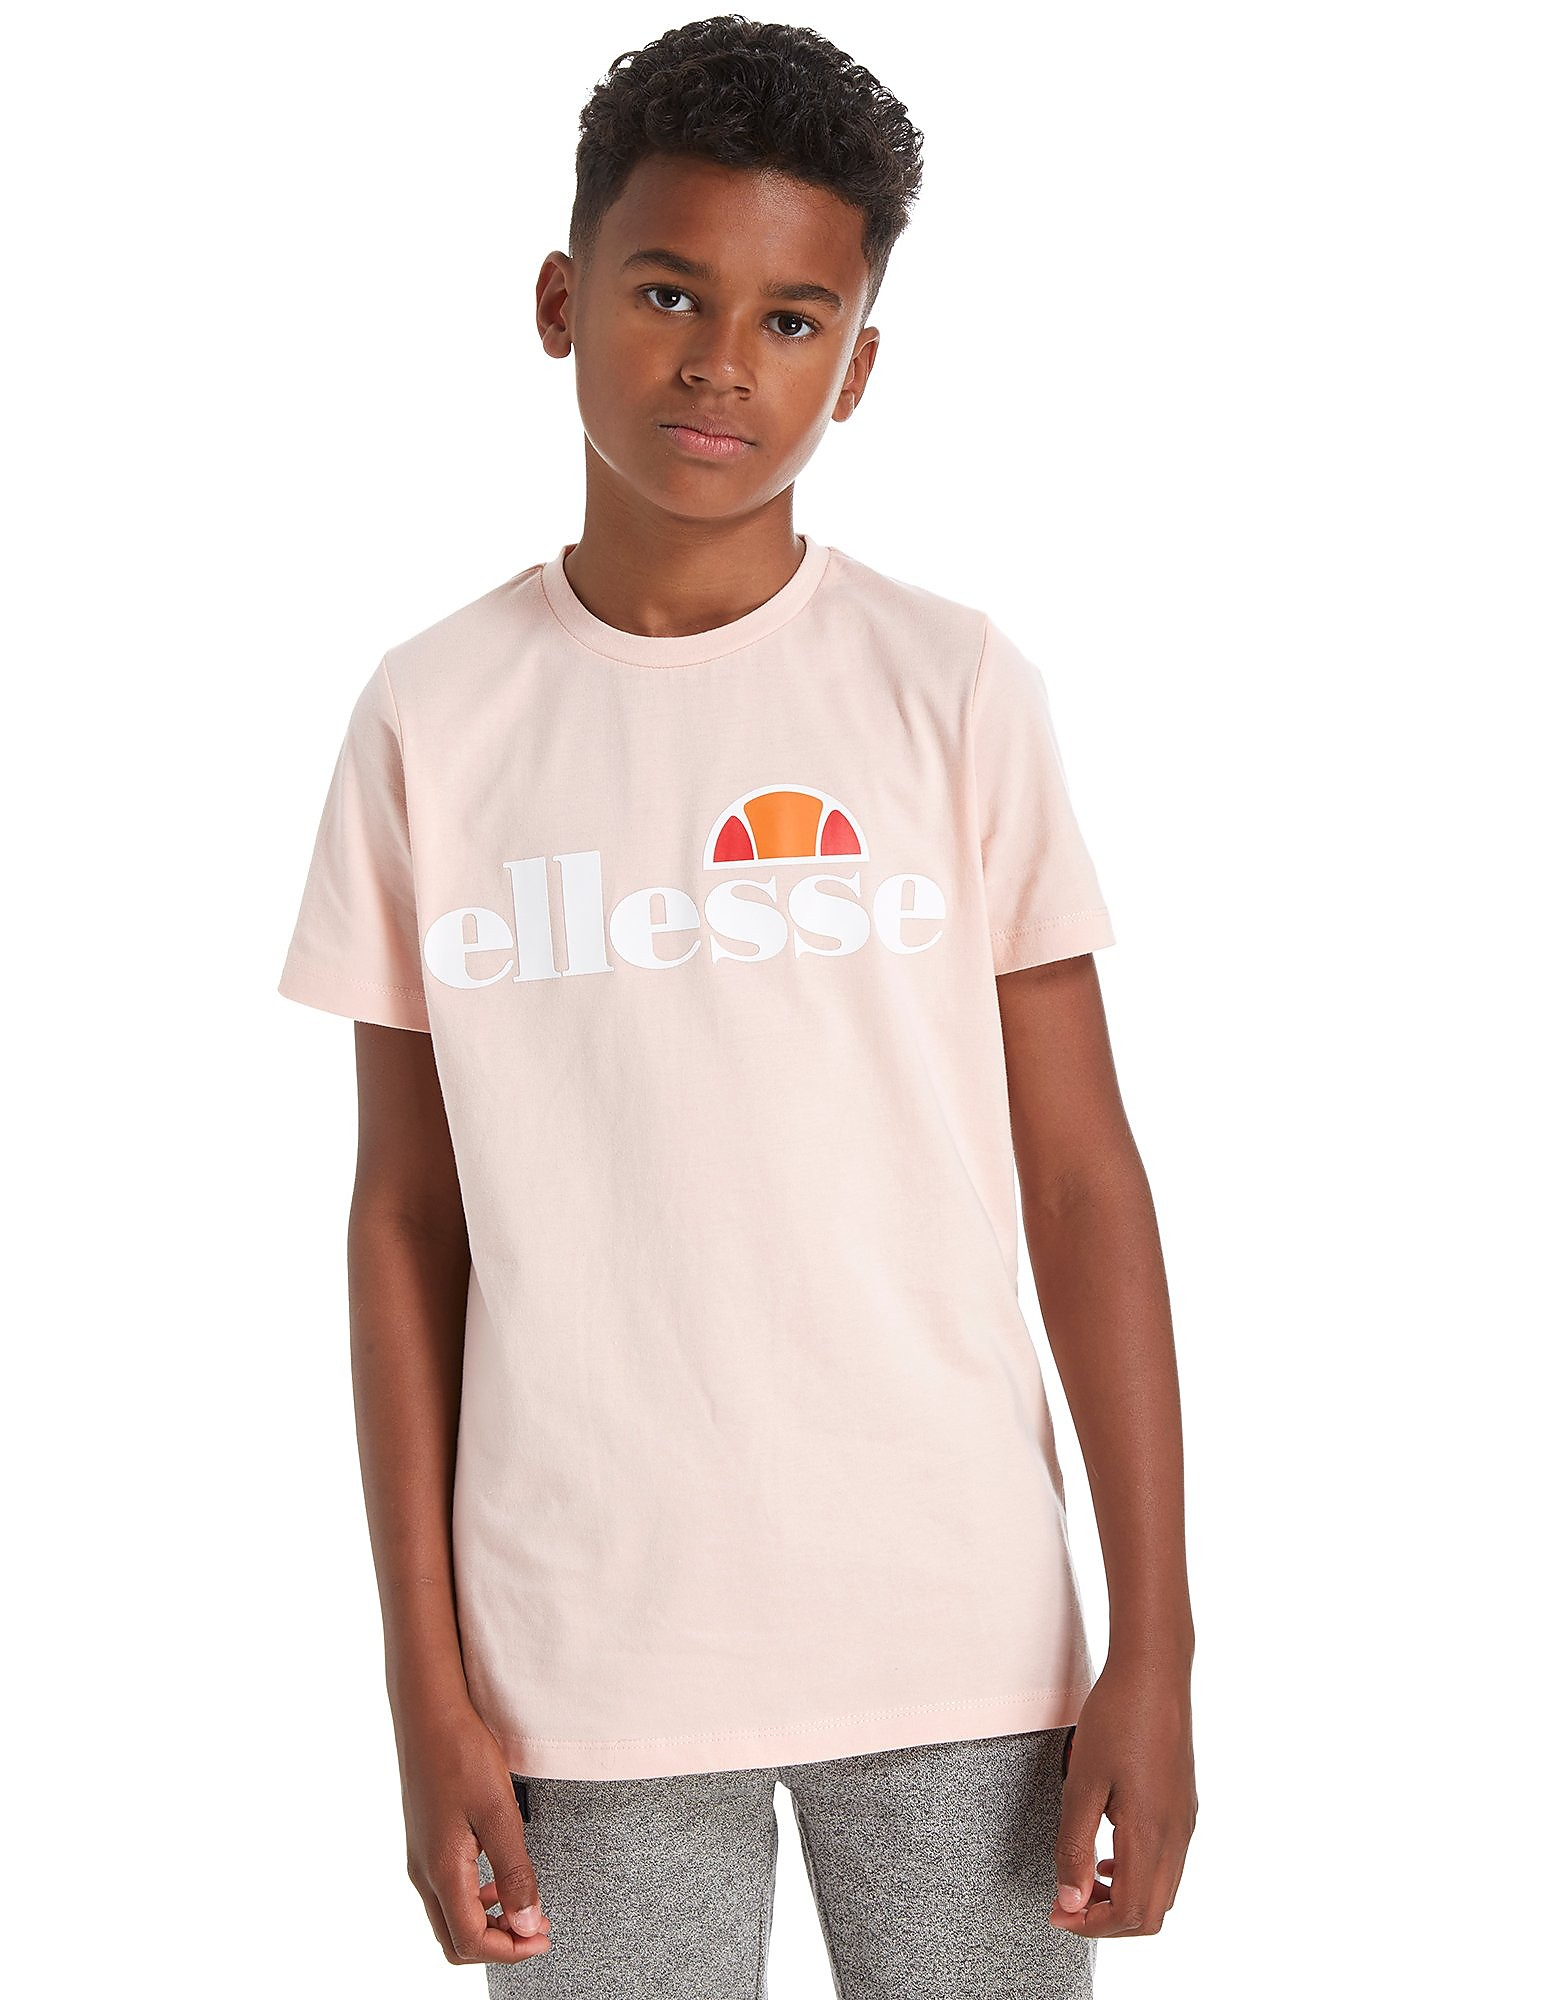 Ellesse Fazzio T-Shirt Junior